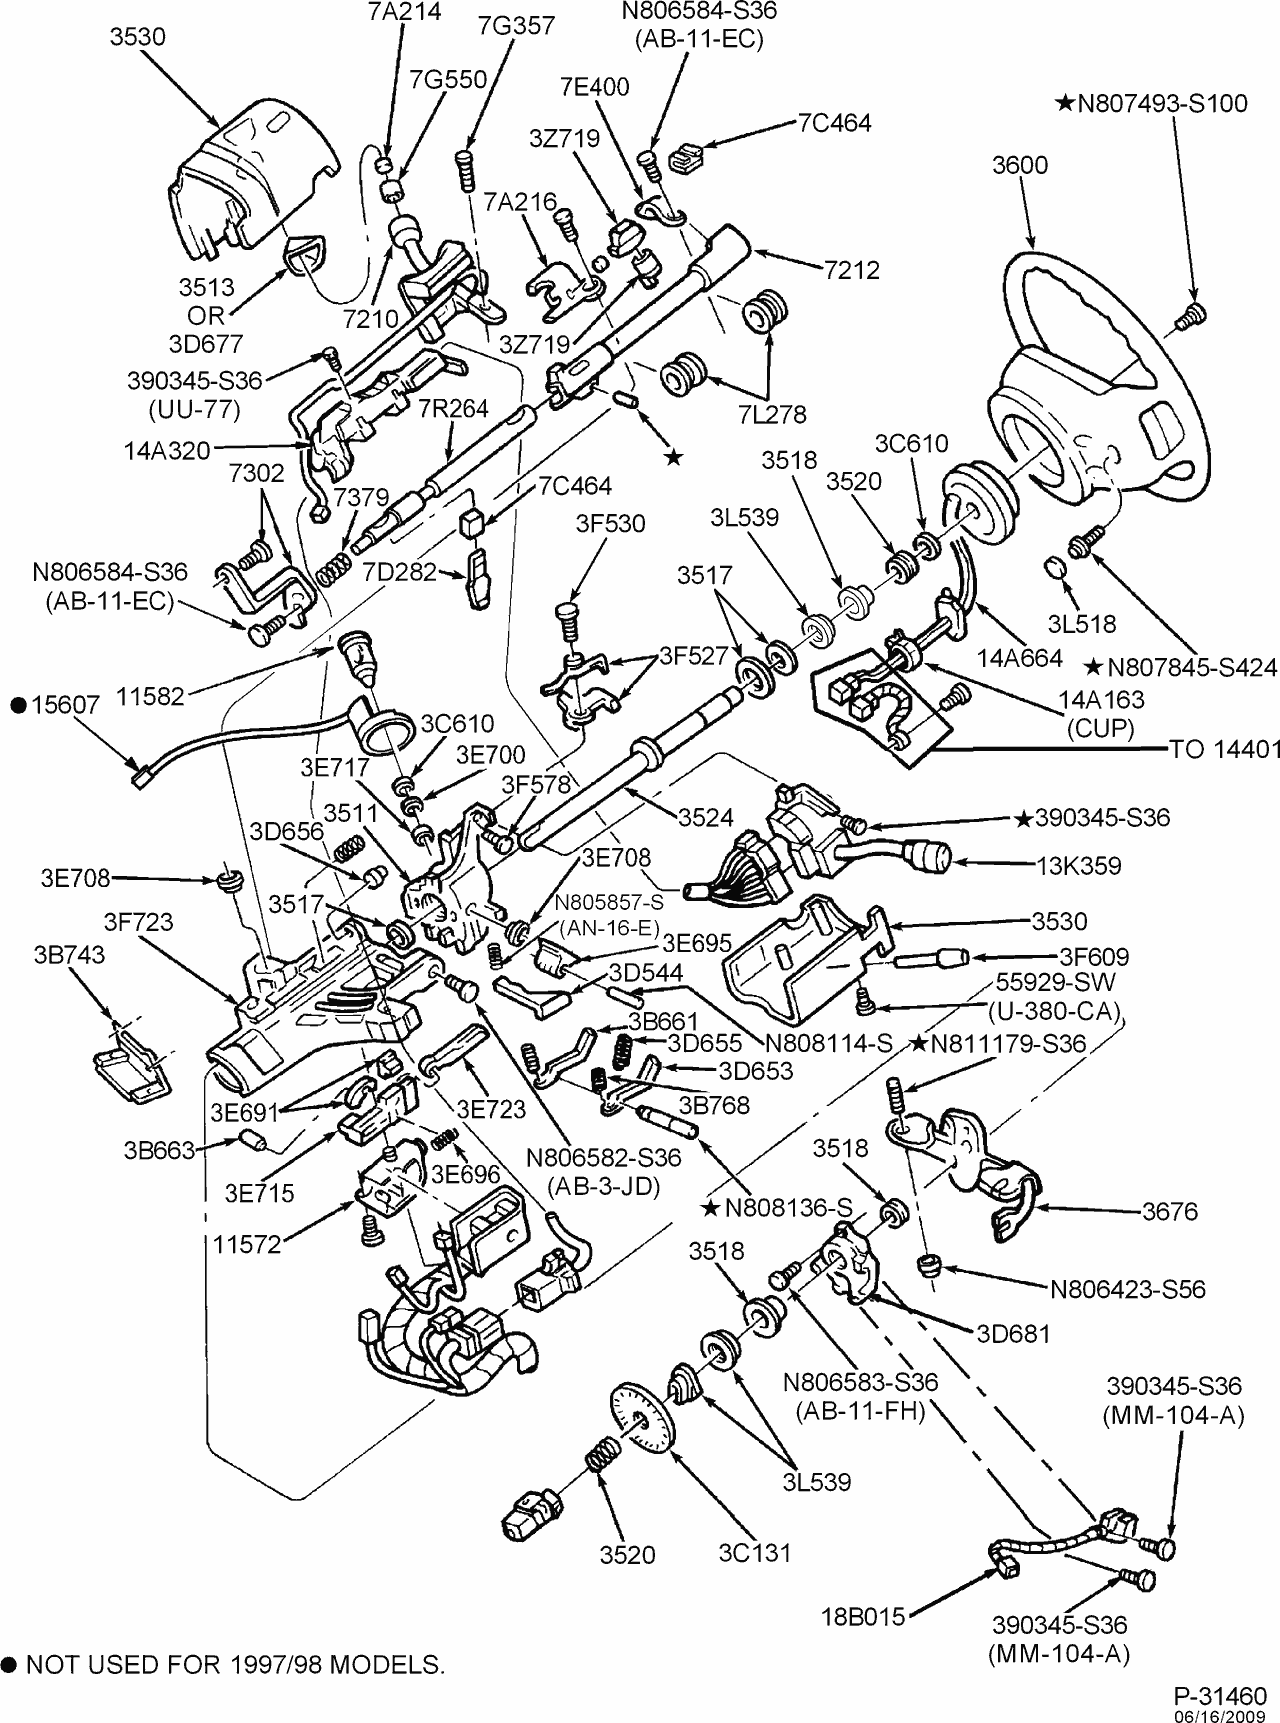 1987 Ford Ranger Steering Column - Lir Wiring 101  Ford F Exploded Engine Diagram on 92 nissan maxima engine diagram, 1998 ford f-150 engine diagram, 92 honda civic engine diagram, 92 chevy s10 engine diagram, 92 jeep wrangler engine diagram, 92 subaru legacy engine diagram, 92 honda accord engine diagram, 92 nissan sentra engine diagram, 92 jeep cherokee engine diagram,